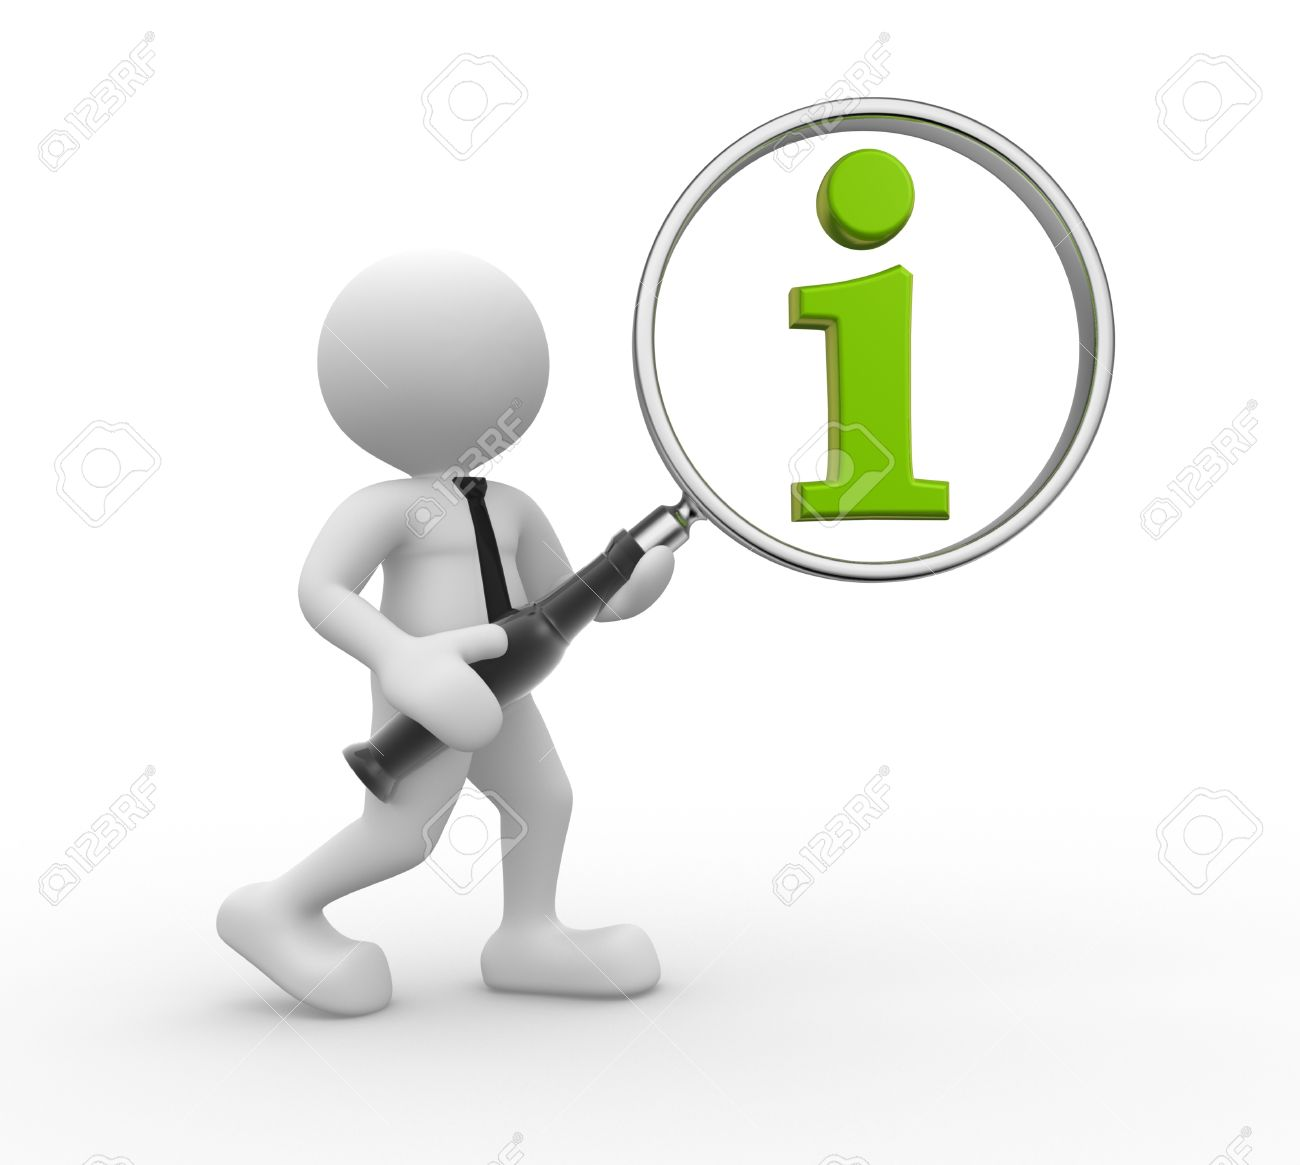 3d people - man, person  with magnifying glass and green information icon Standard-Bild - 17532606